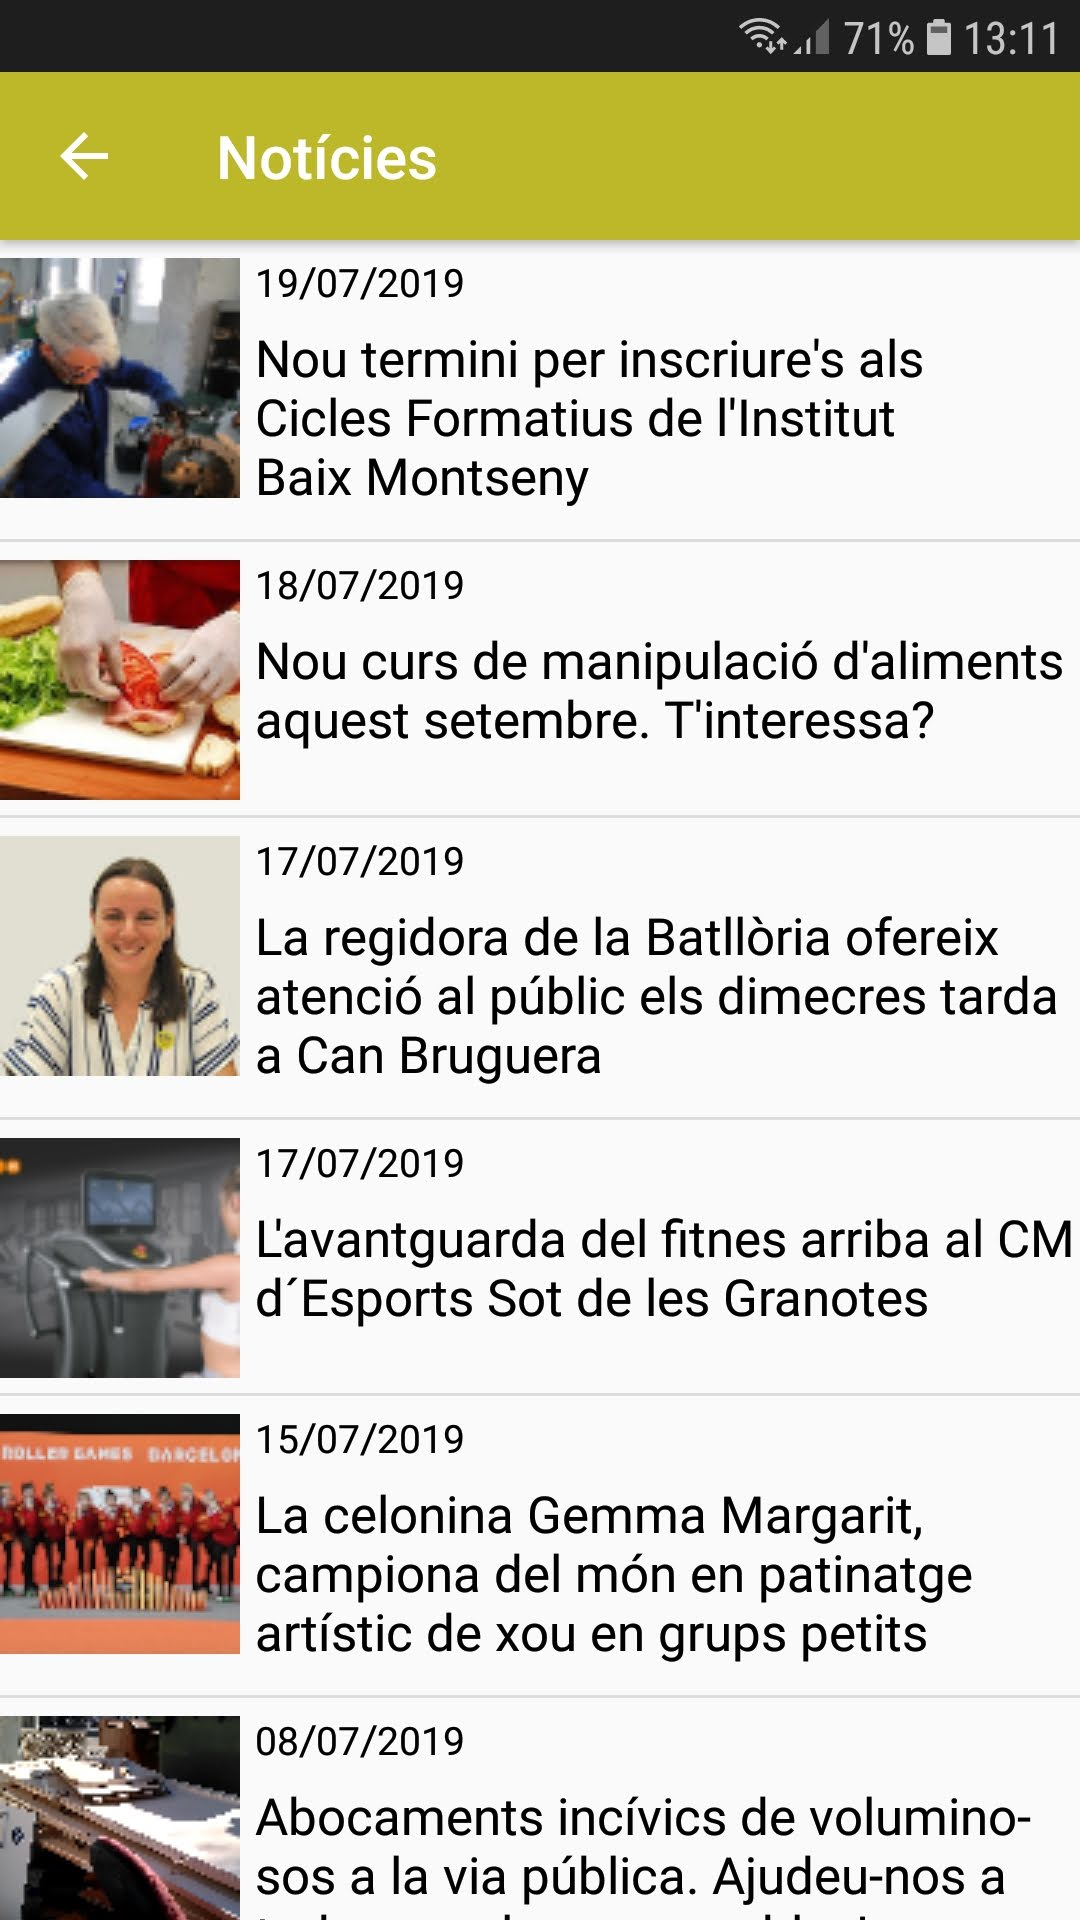 noticies appvisador city